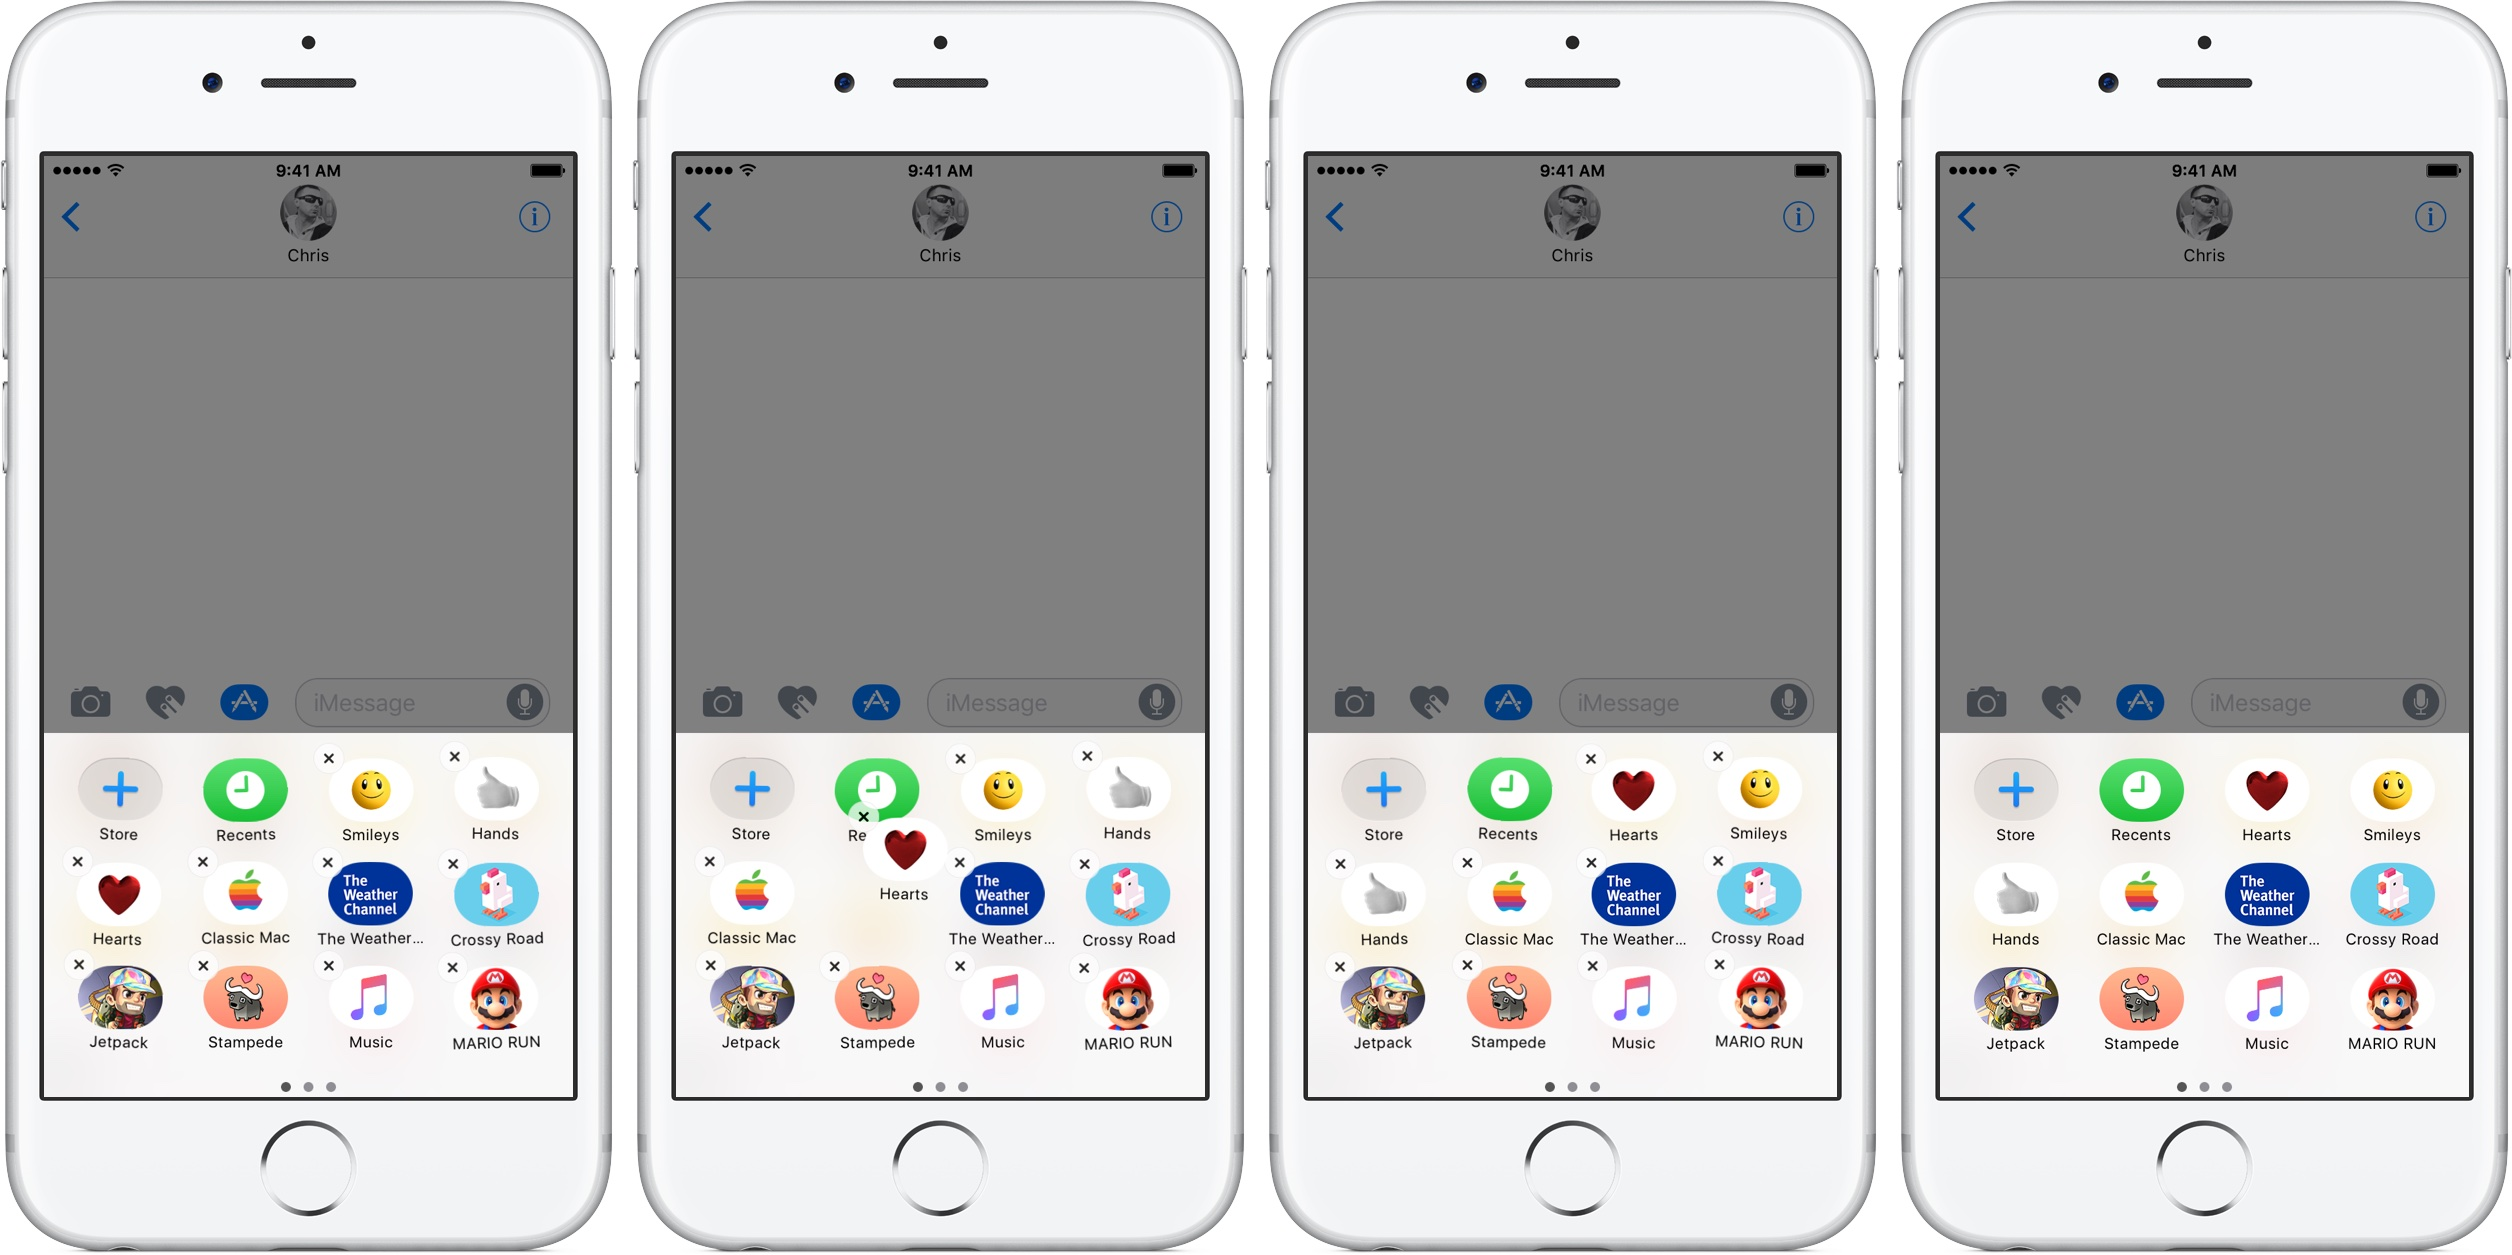 iOS 10 Messages reorder sticker packs silver iPhone screenshot 005